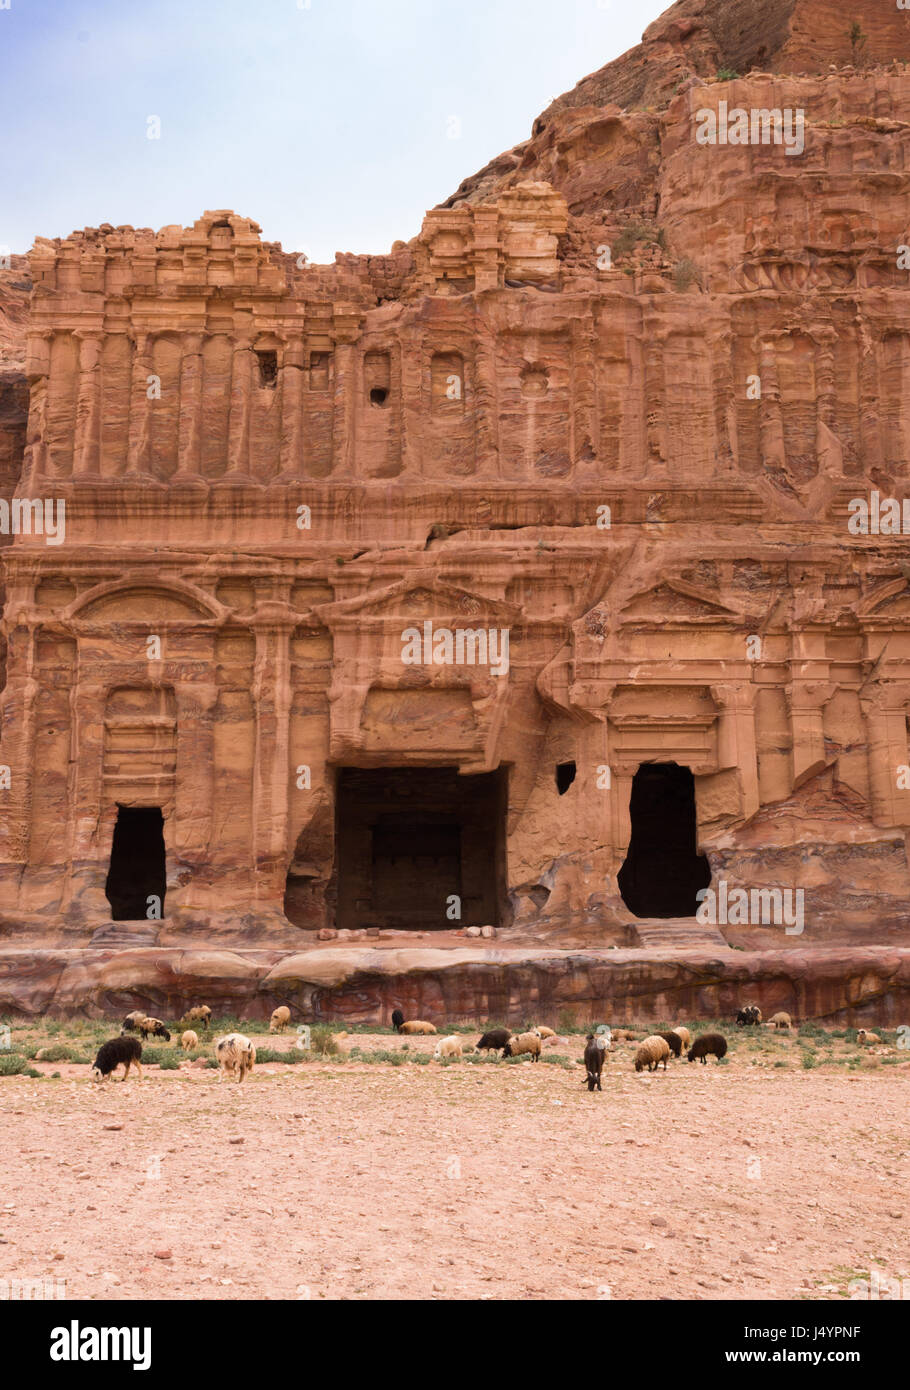 The ornately carved sandstone facade surrounding the entrance of the Corinthian Tomb in Petra or Raqmu, Jordan. Stock Photo